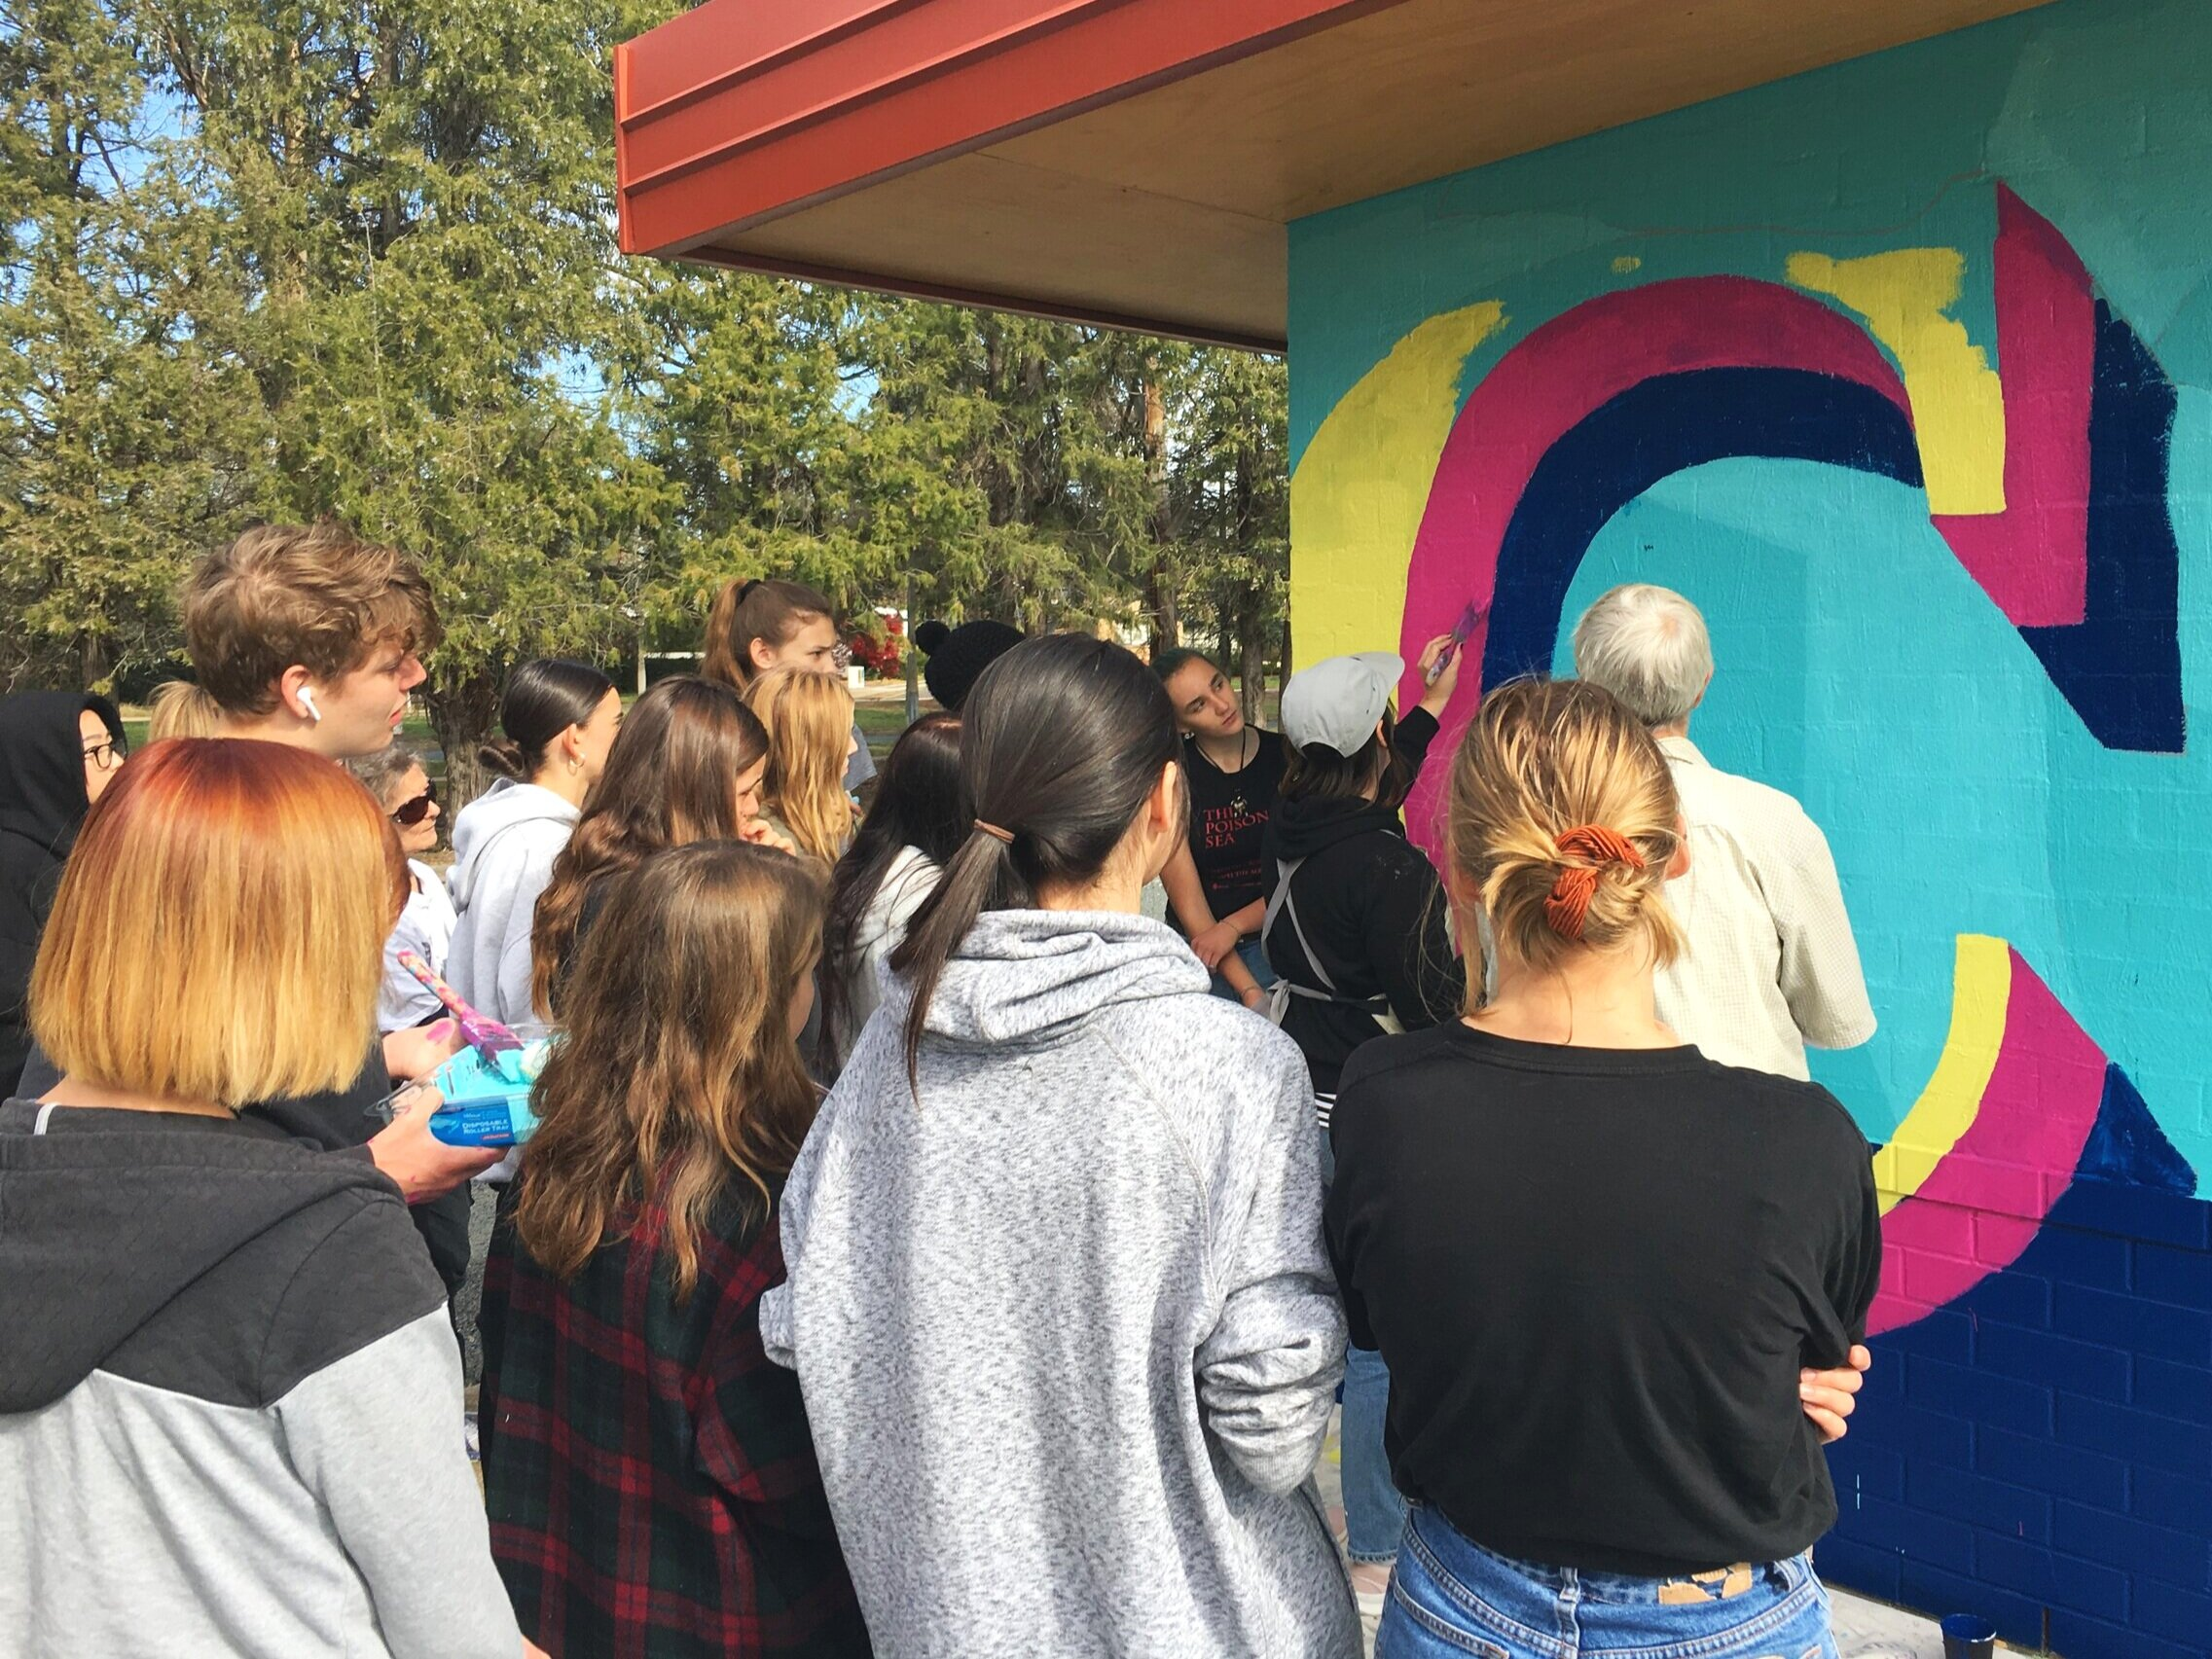 Giving a brush demo on a large scale mural project involving college students and the elderly in Narrabundah, ACT